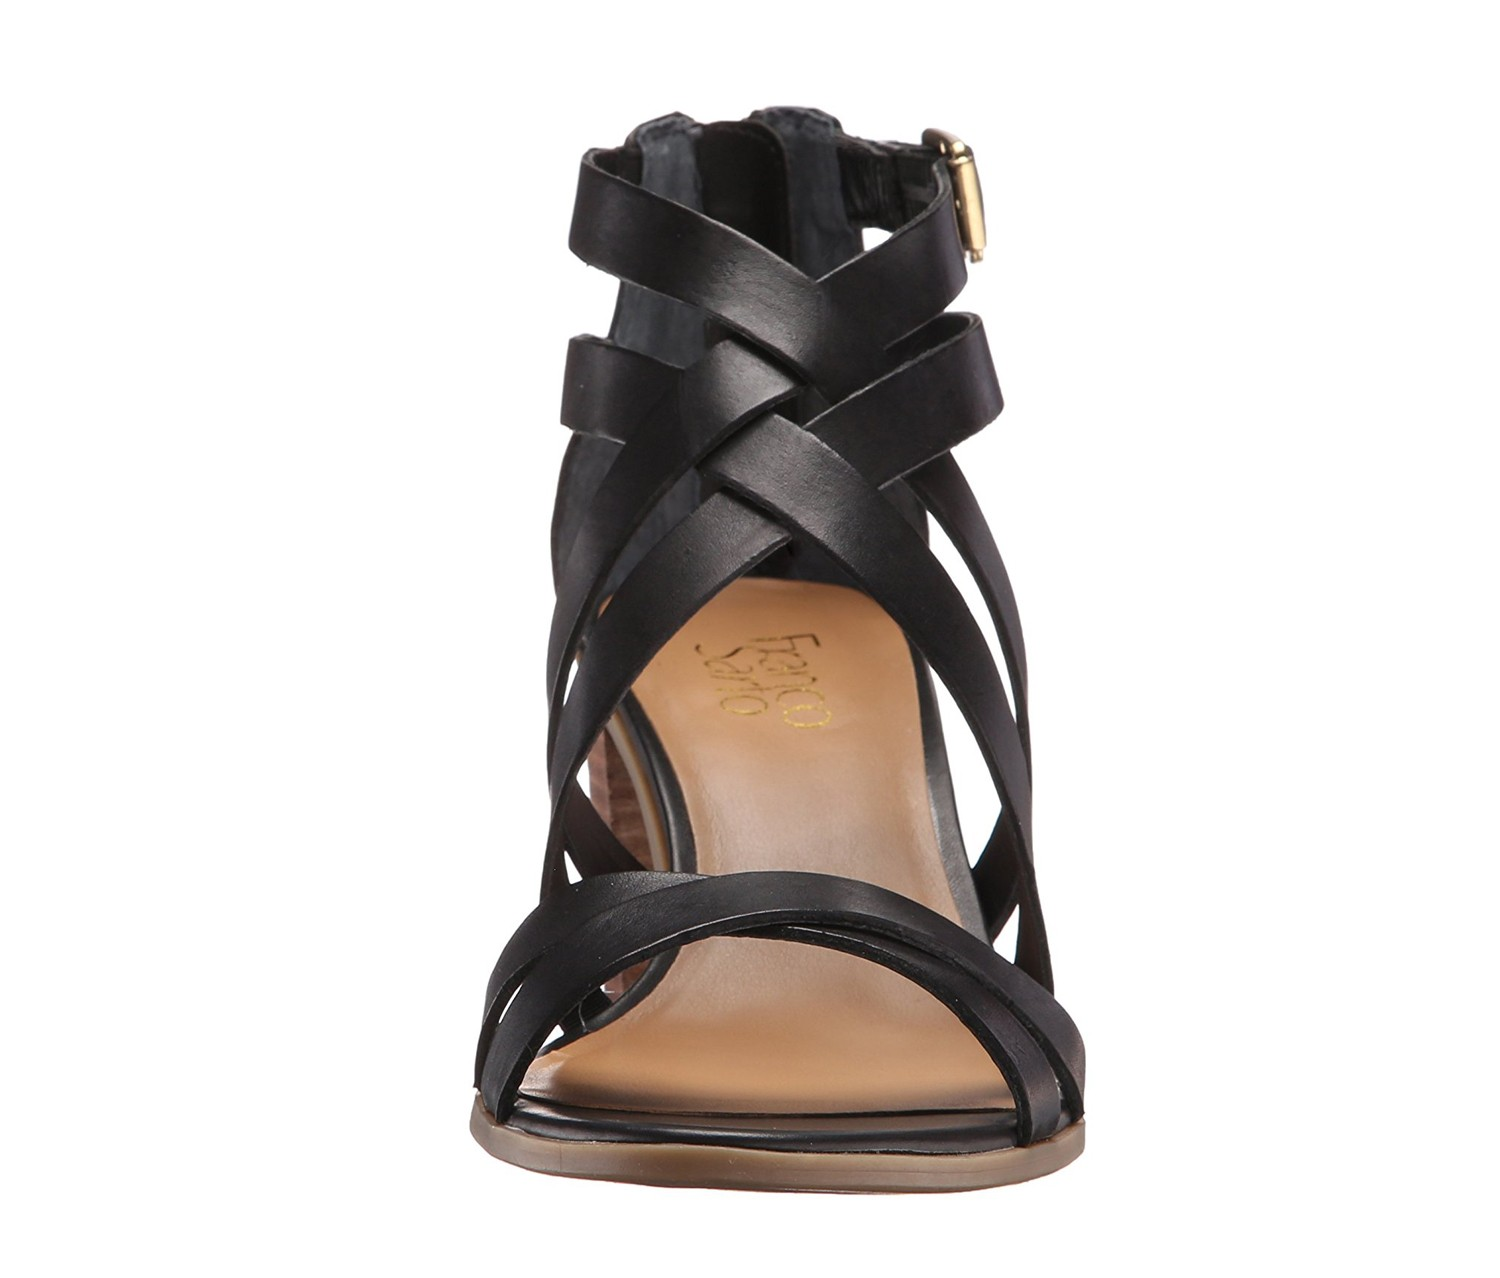 b9dd8b1c0ad6 More Details. Gladiator inspired leather or suede sandal ...